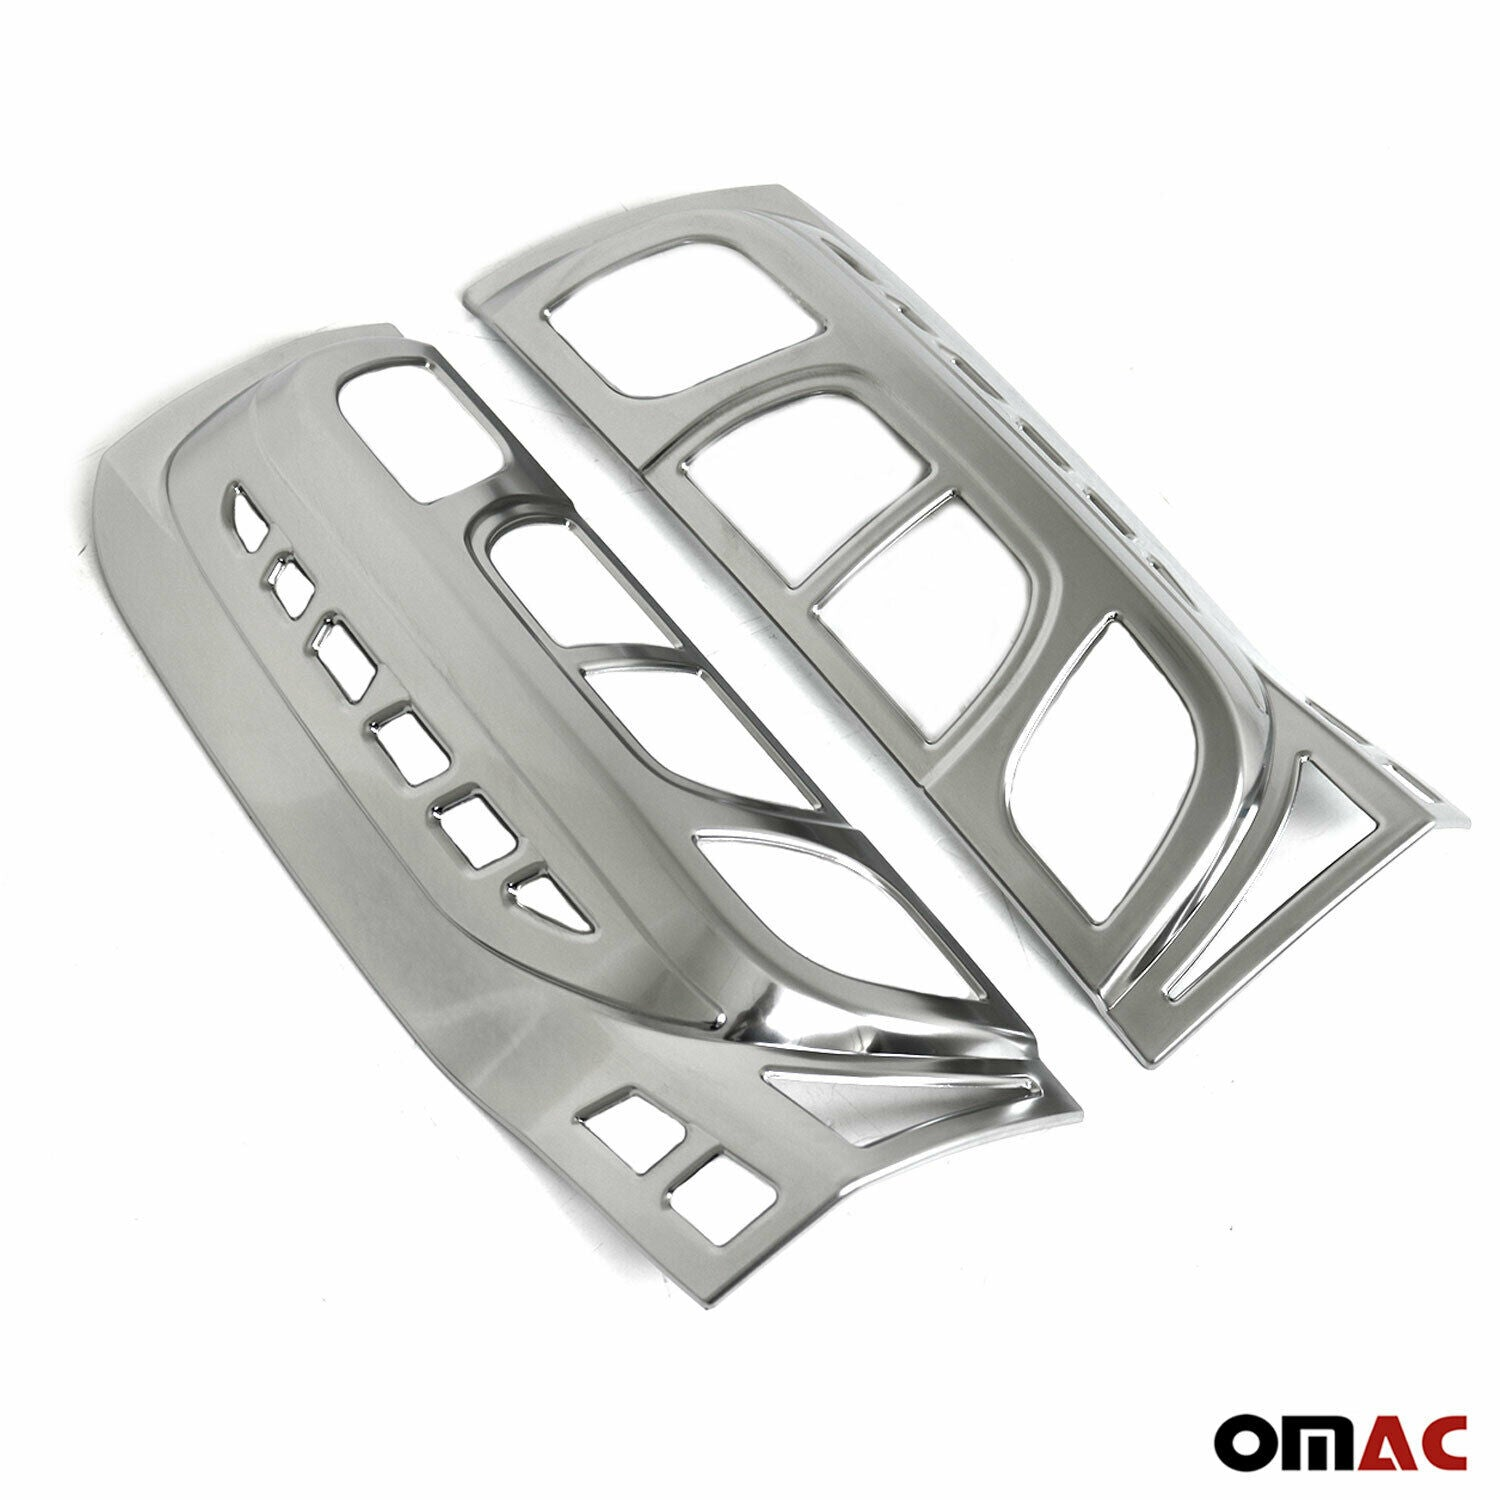 Satin Chrome Stop Brake Light Frame 2 Pcs For Citroen Nemo 2008-2017